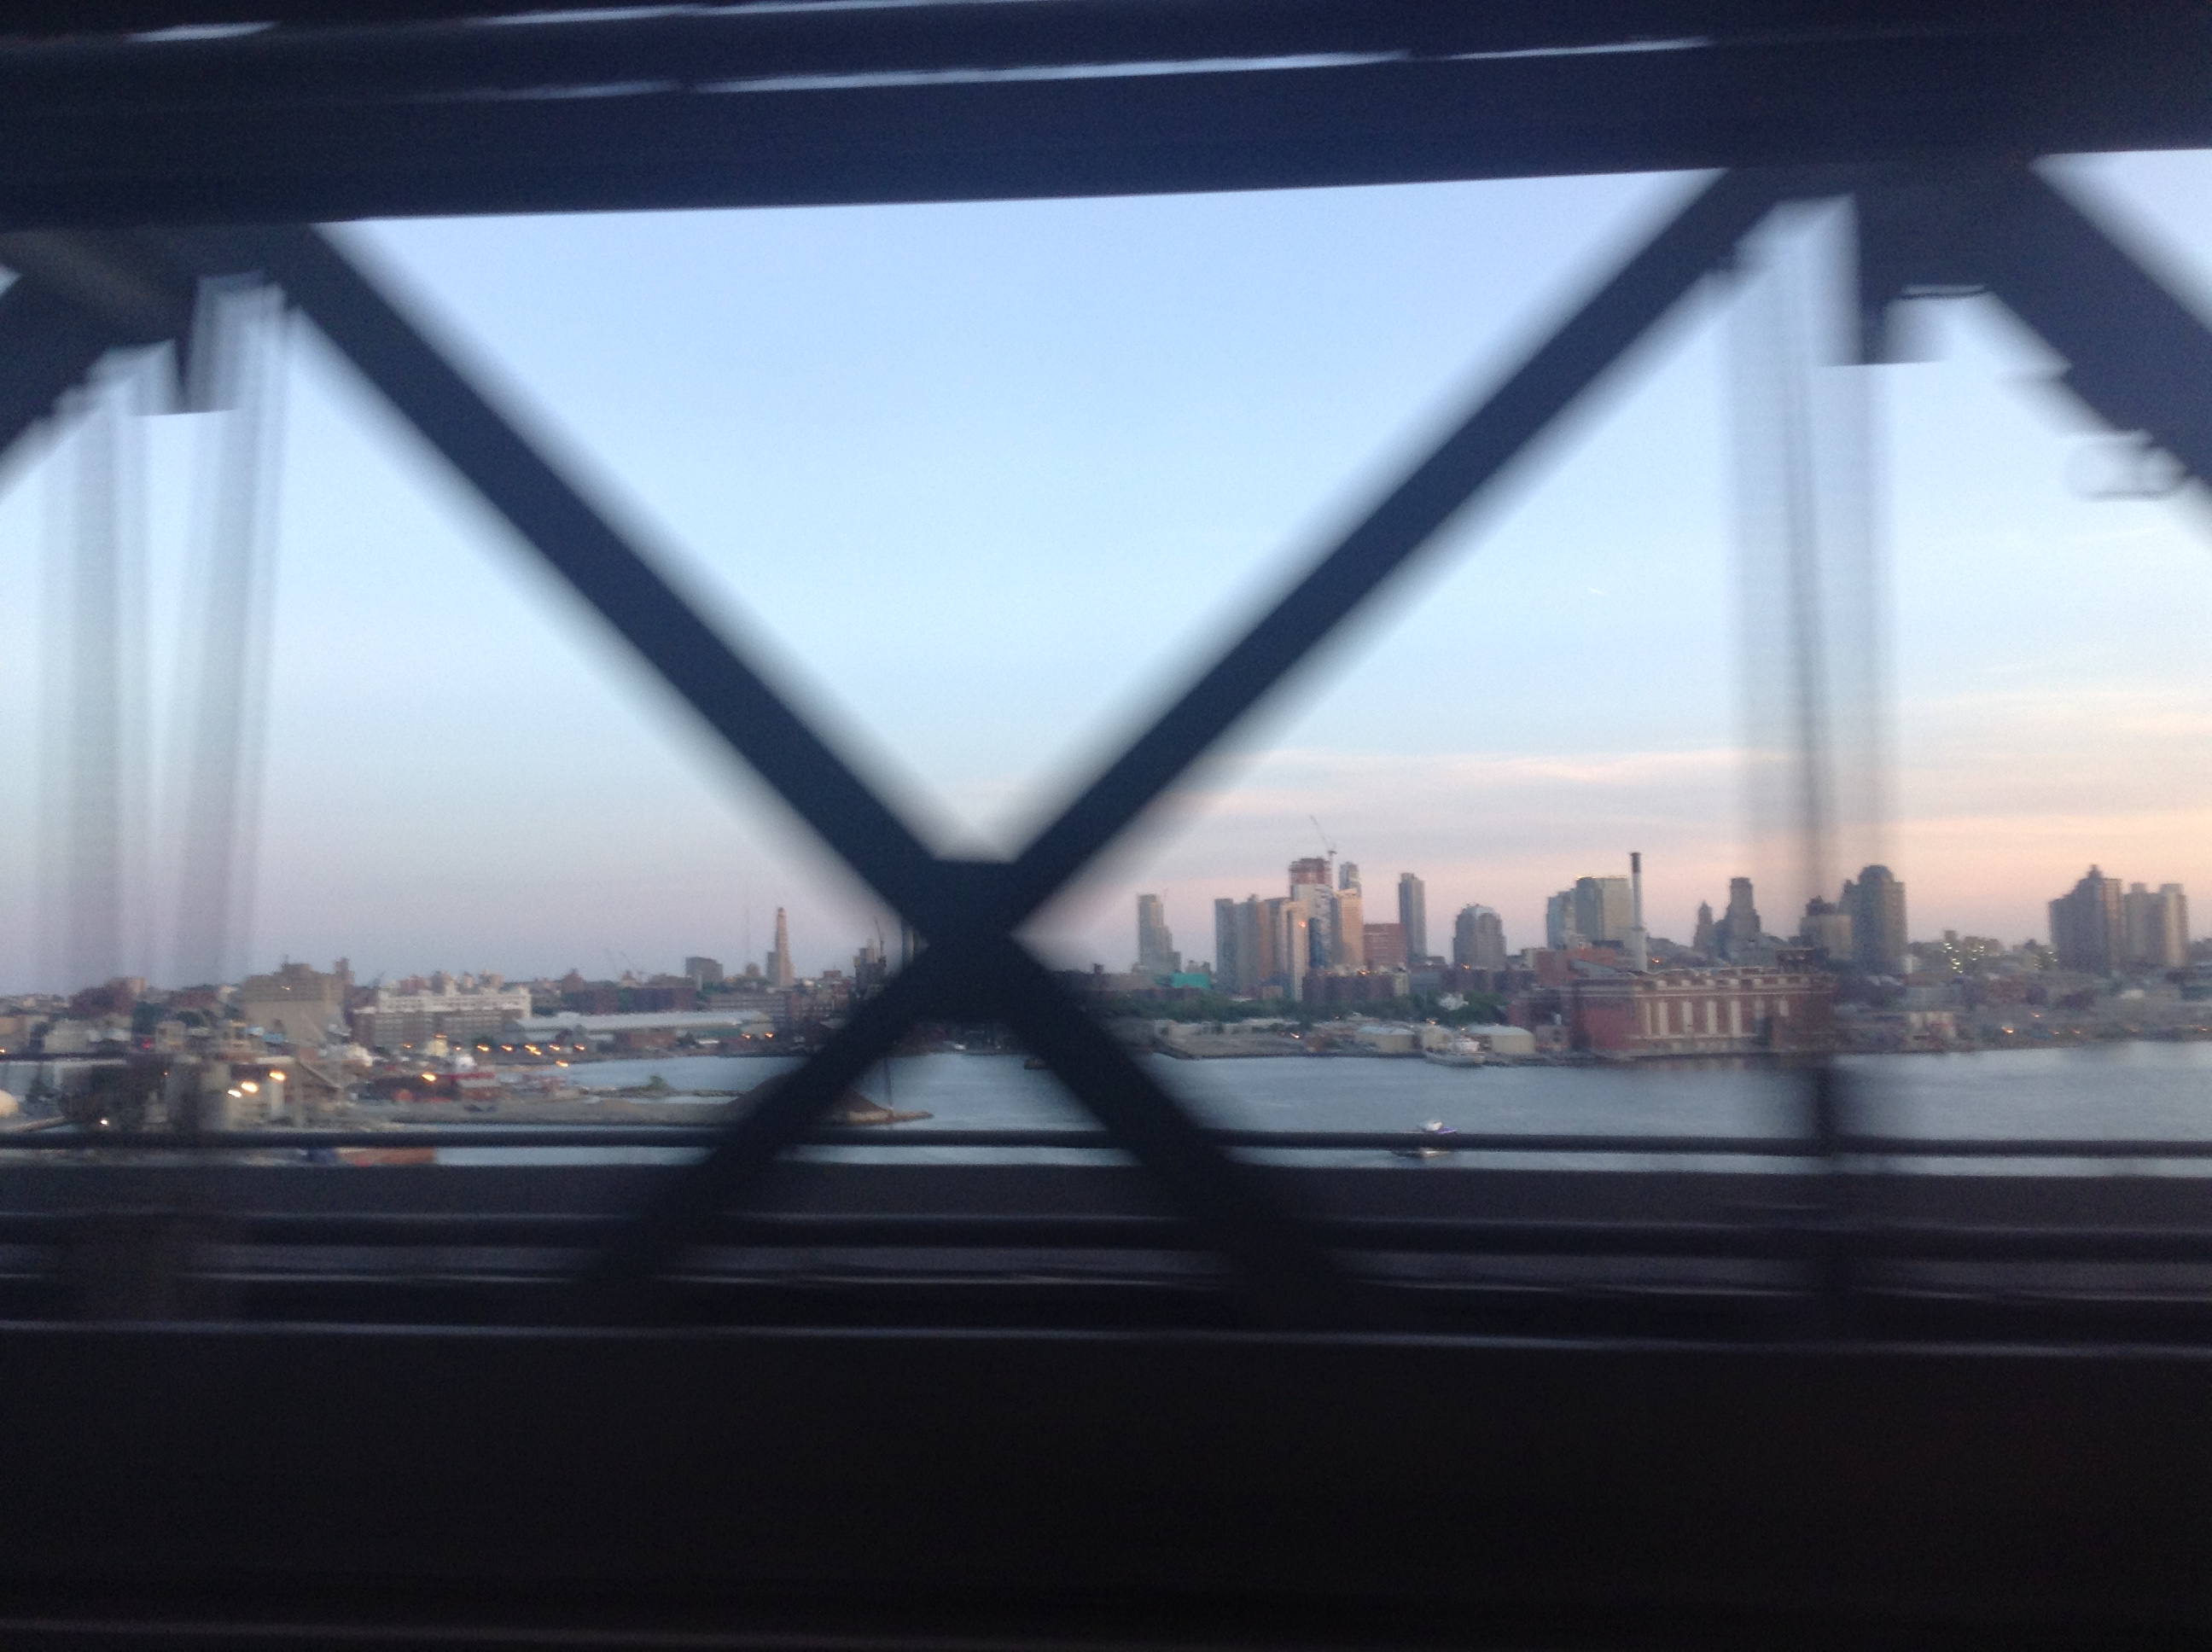 An evening glimpse of Manhattan from Williamsburg Bridge